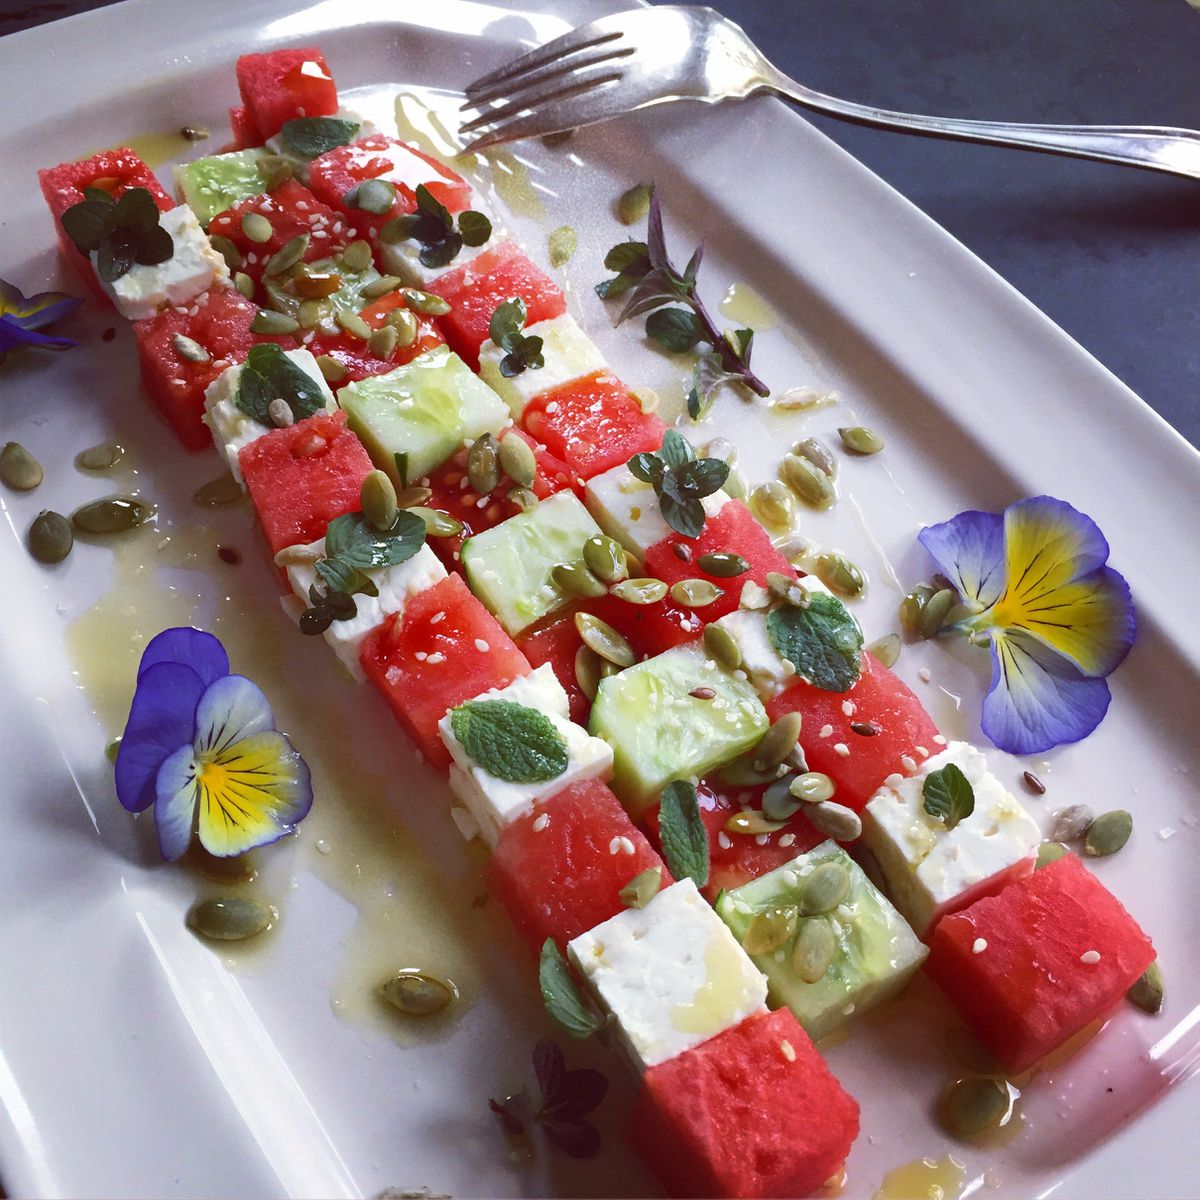 Watermelon-feta salad with pepitas and mint (Photo by Kim Sunée)